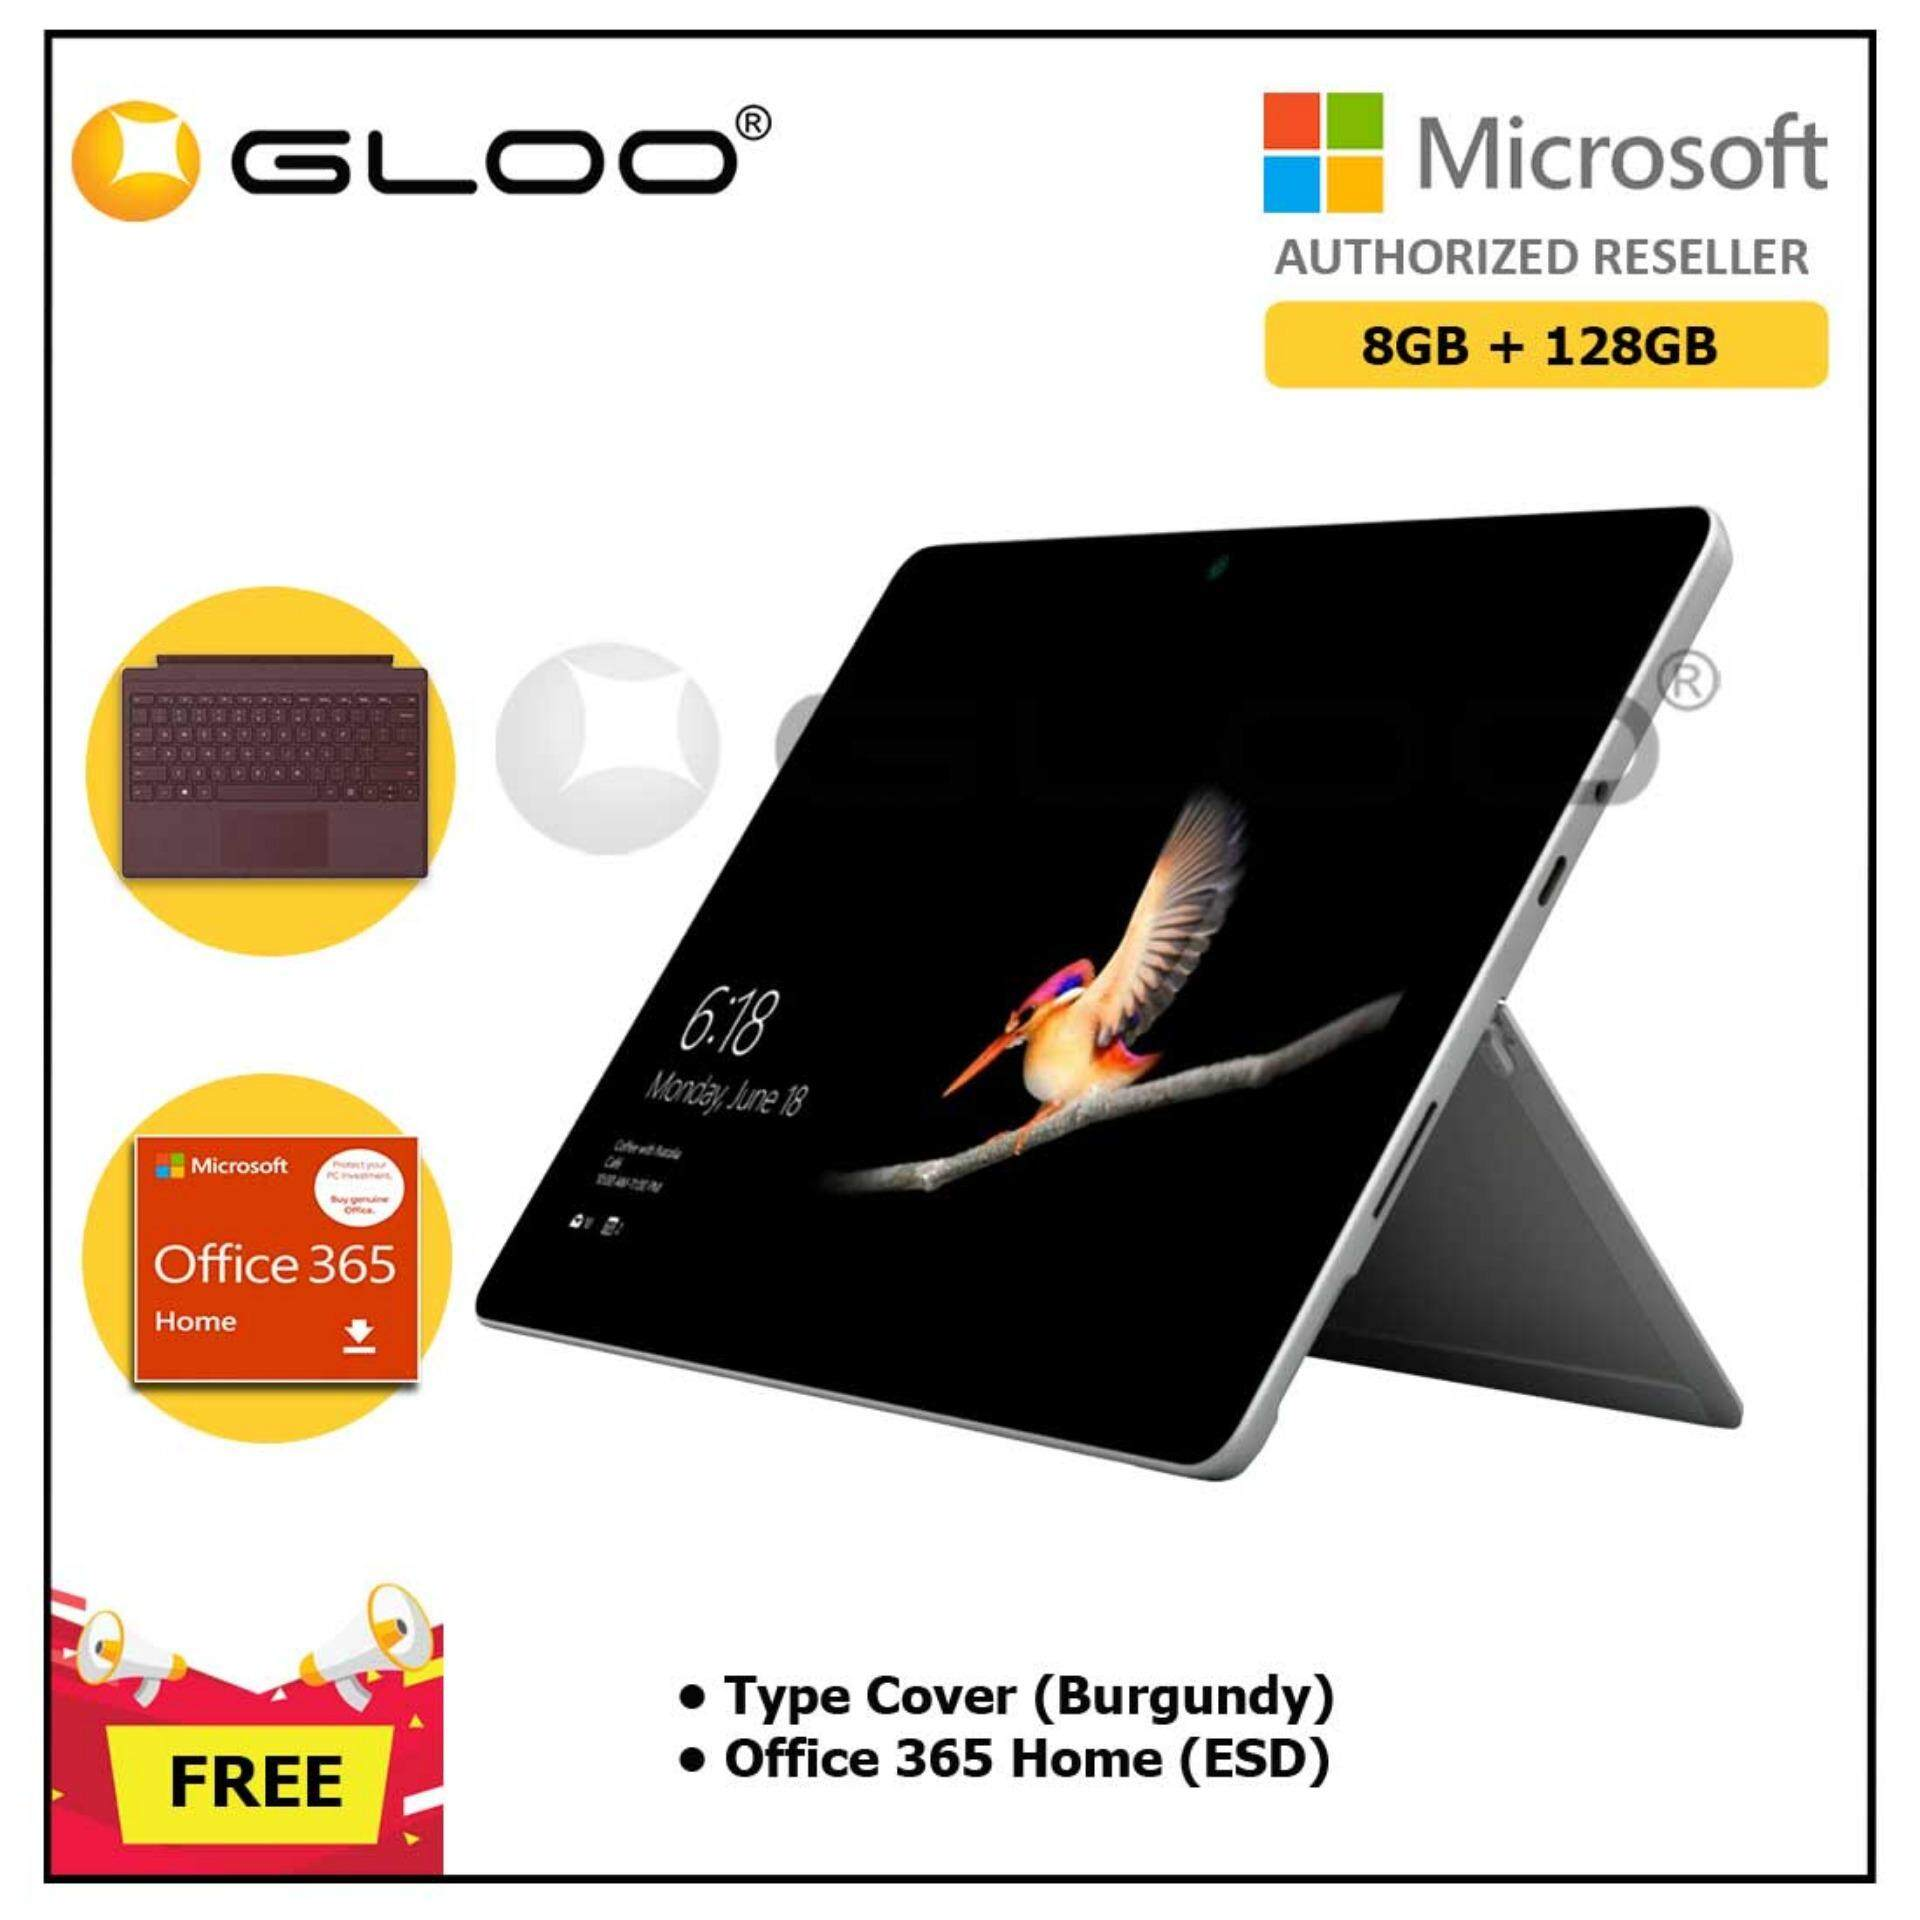 Surface Go Y/8GB 128GB + Surface Go Type Cover Burgundy + Office 365 Home ESD